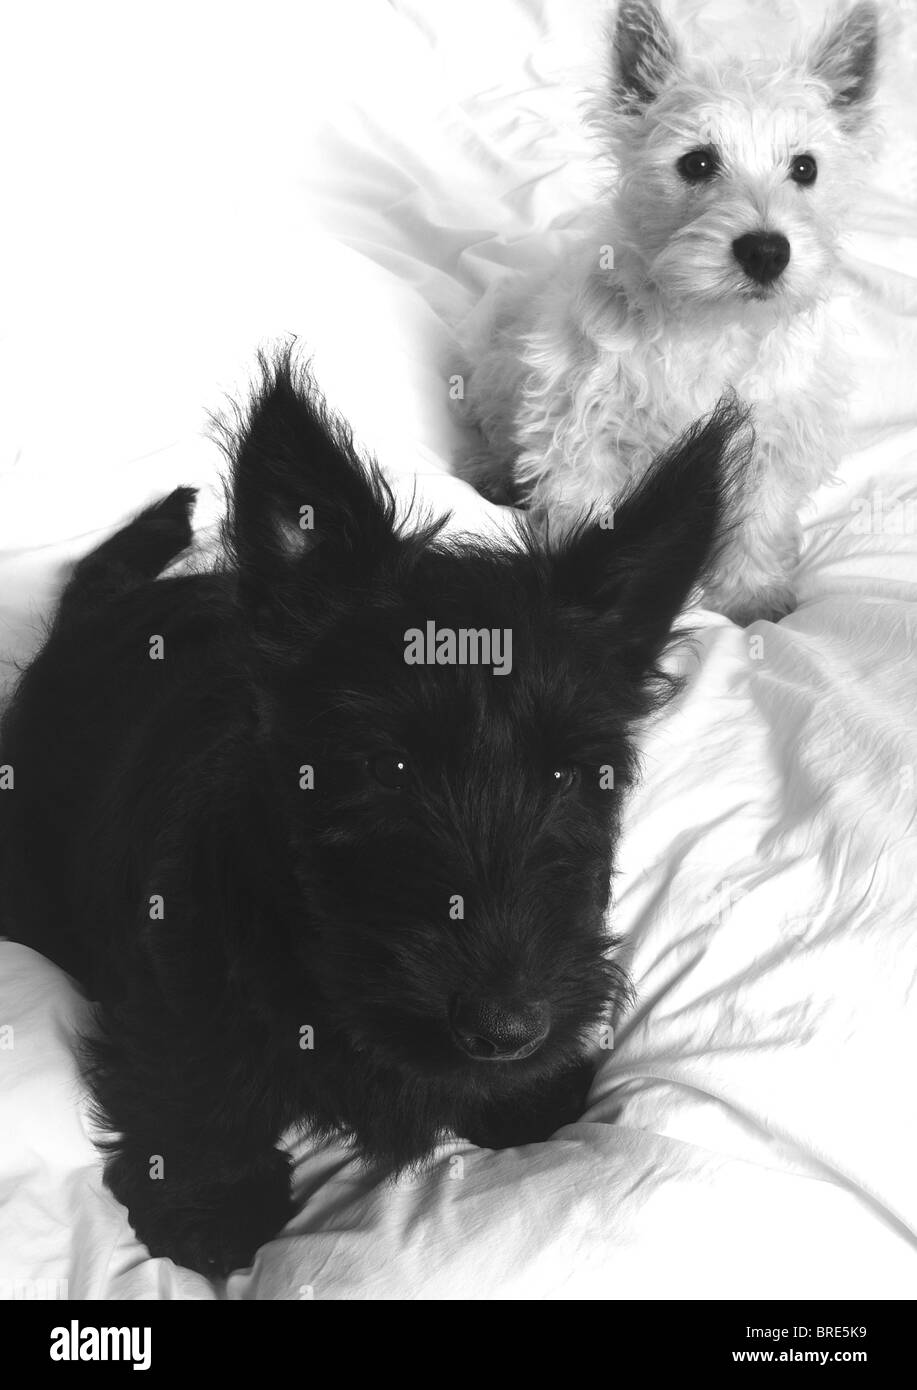 A White West Highland Terrier Westie Puppy Dog And A Black Stock Photo Alamy